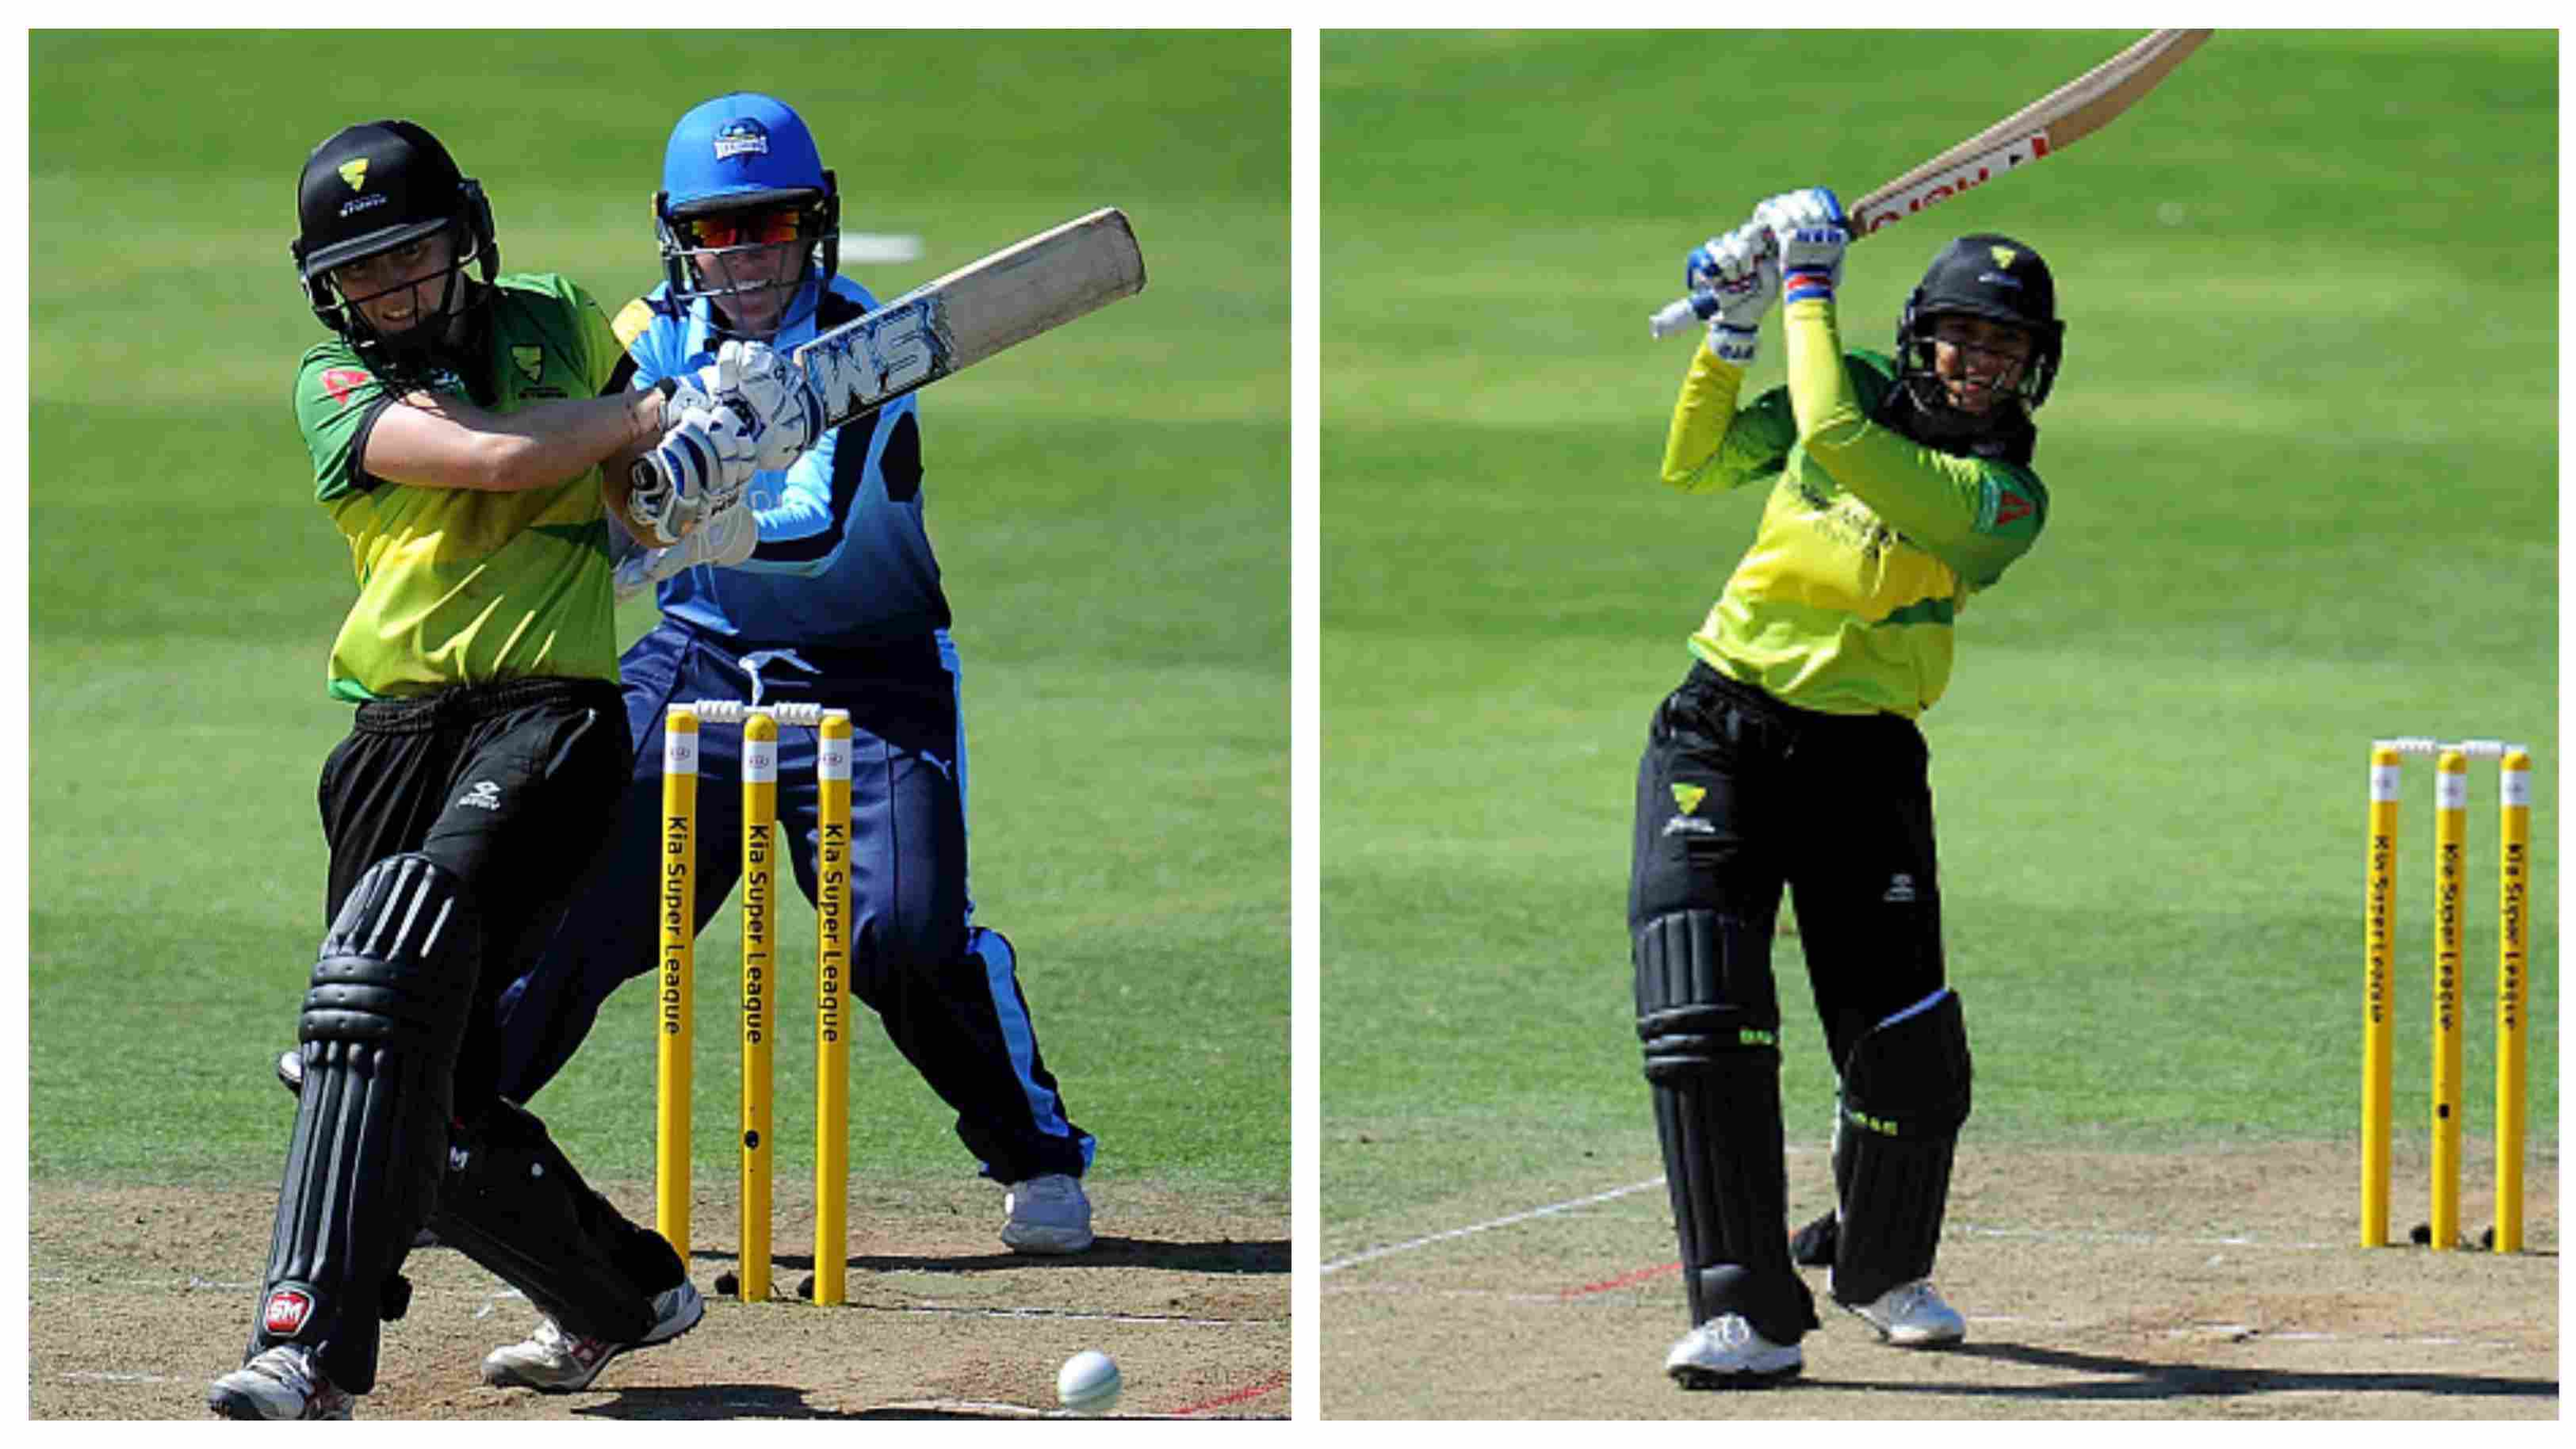 Heather Knight shares the experience of batting with Smriti Mandhana in Kia Super League